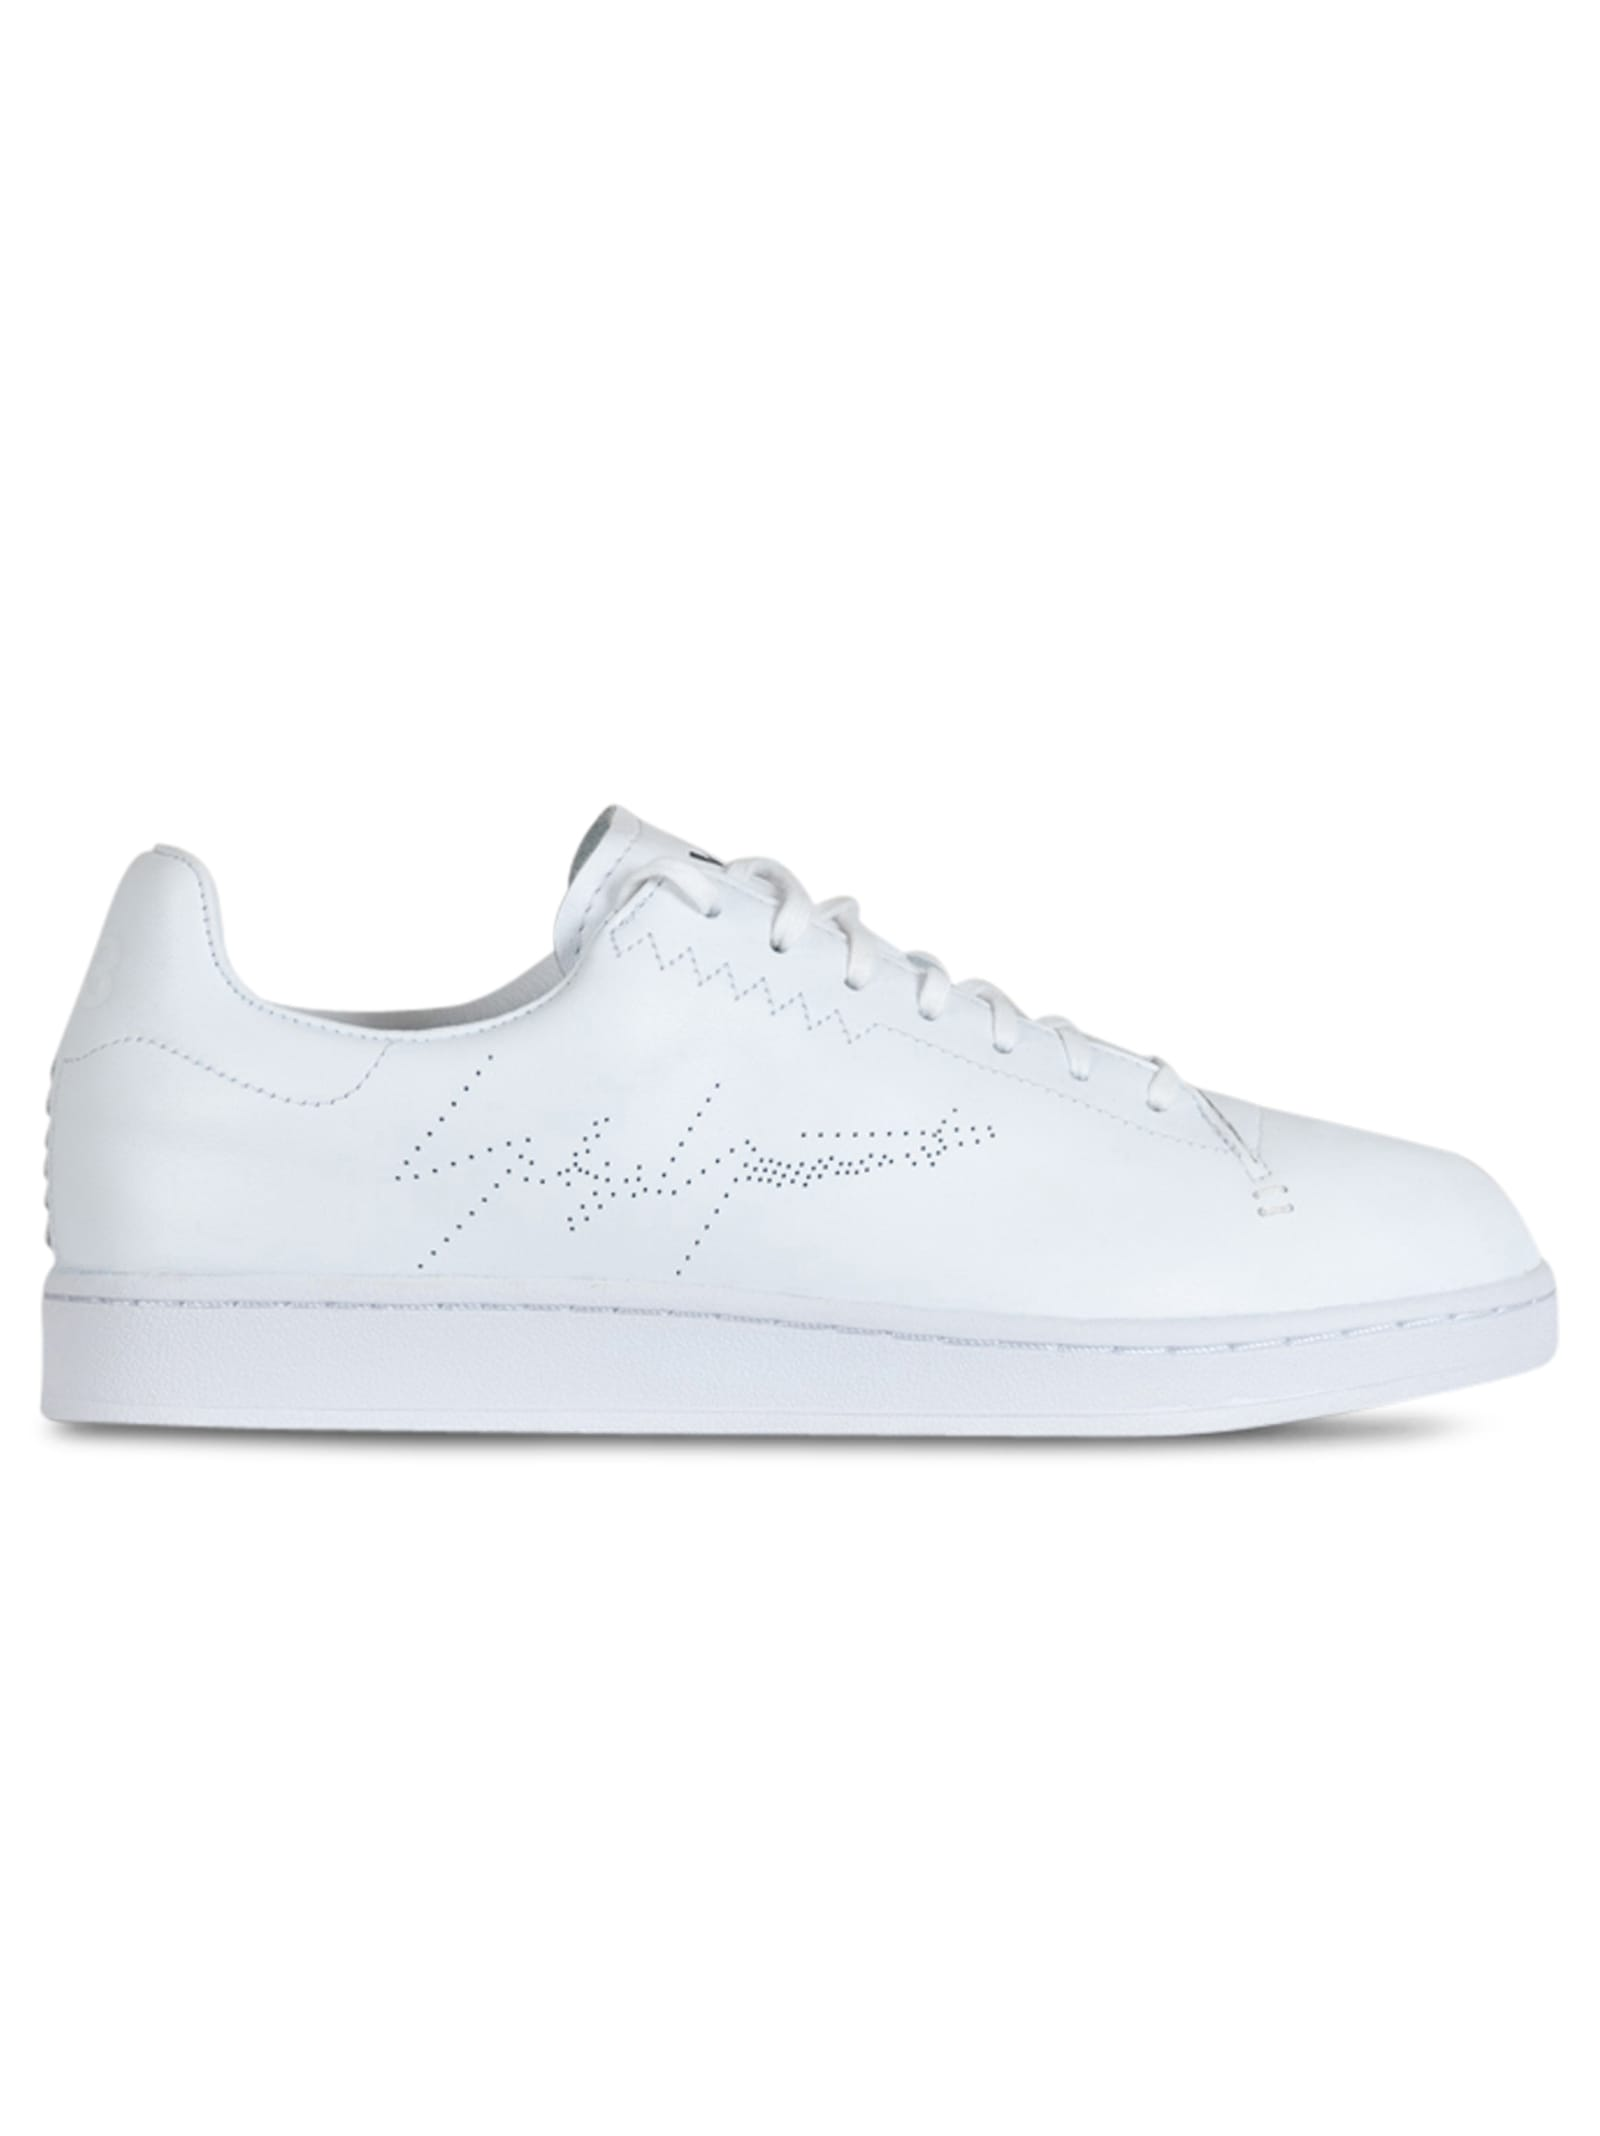 Y3 YOHJI COURT SNEAKERS COLOR WHITE